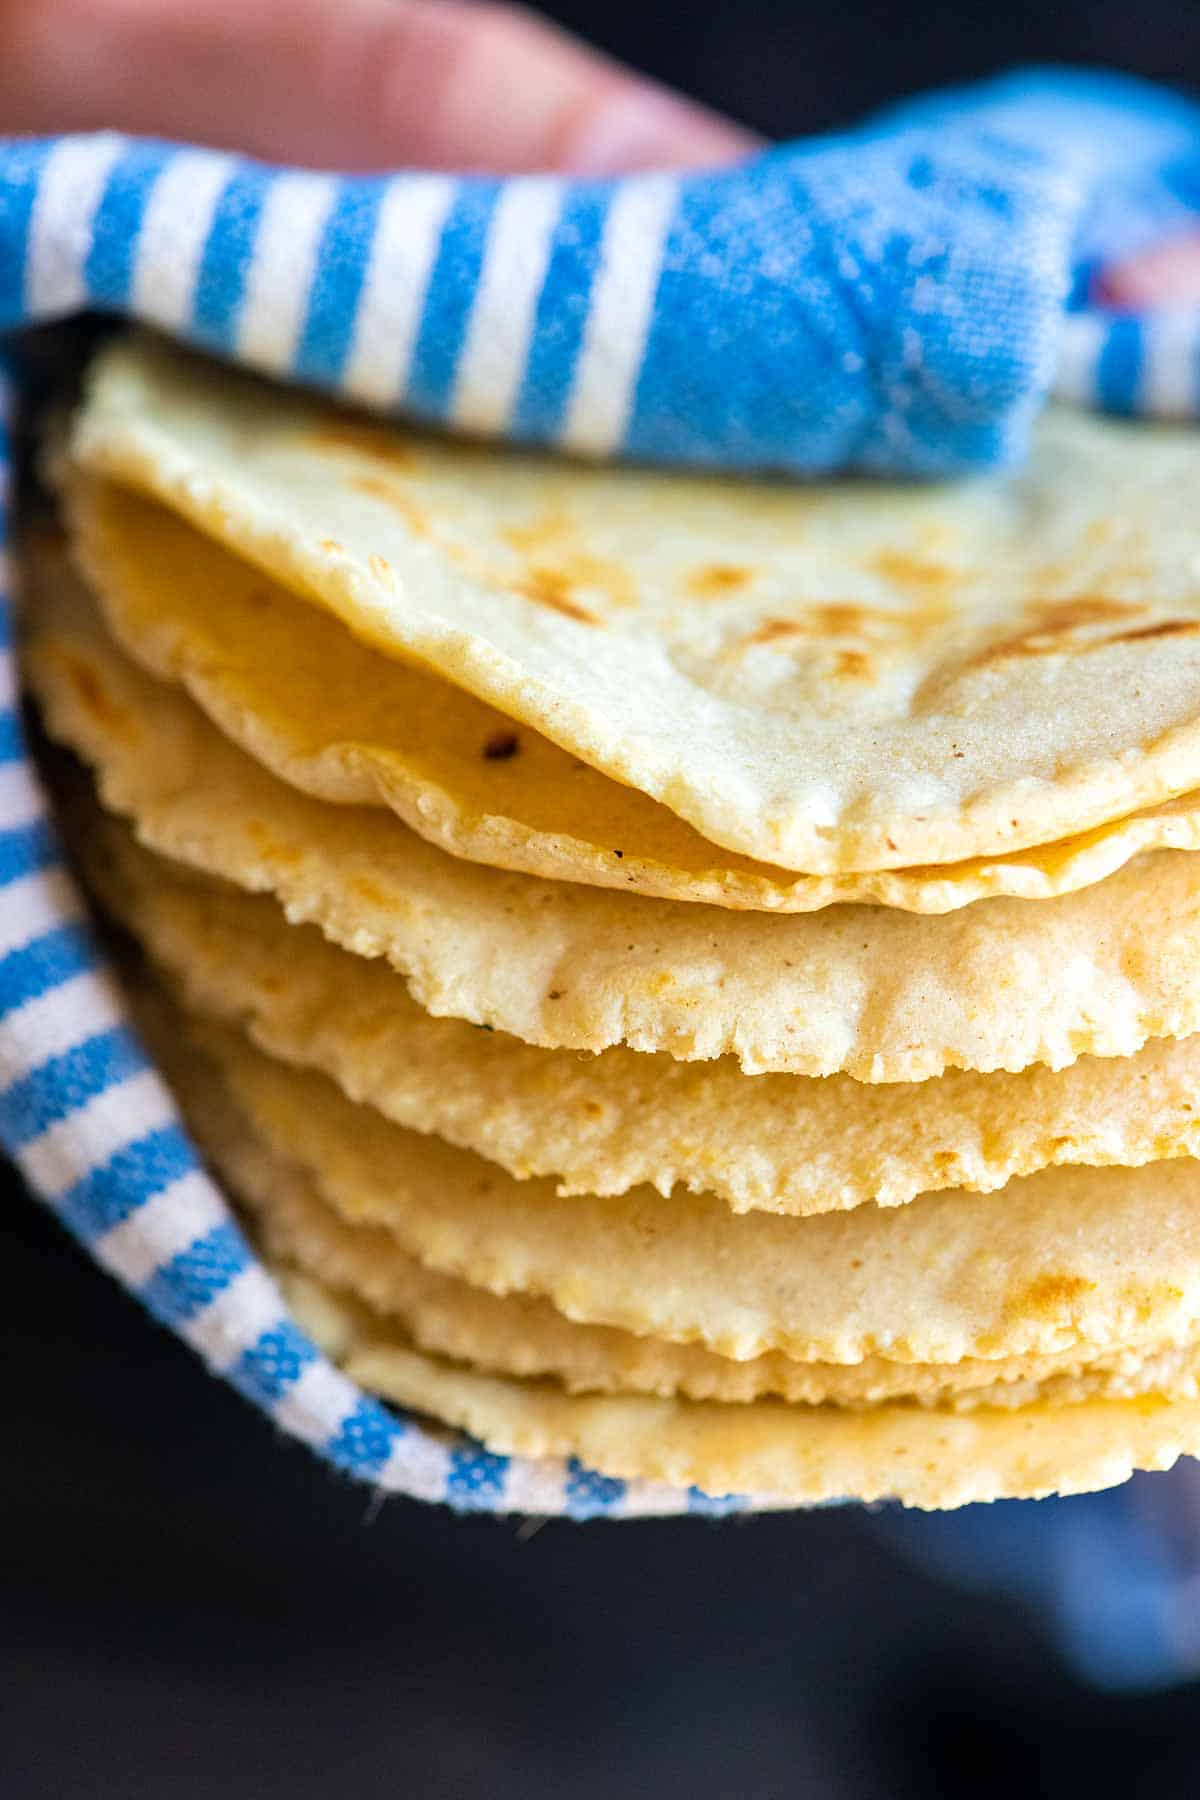 A stack of warm, freshly cooked corn tortillas